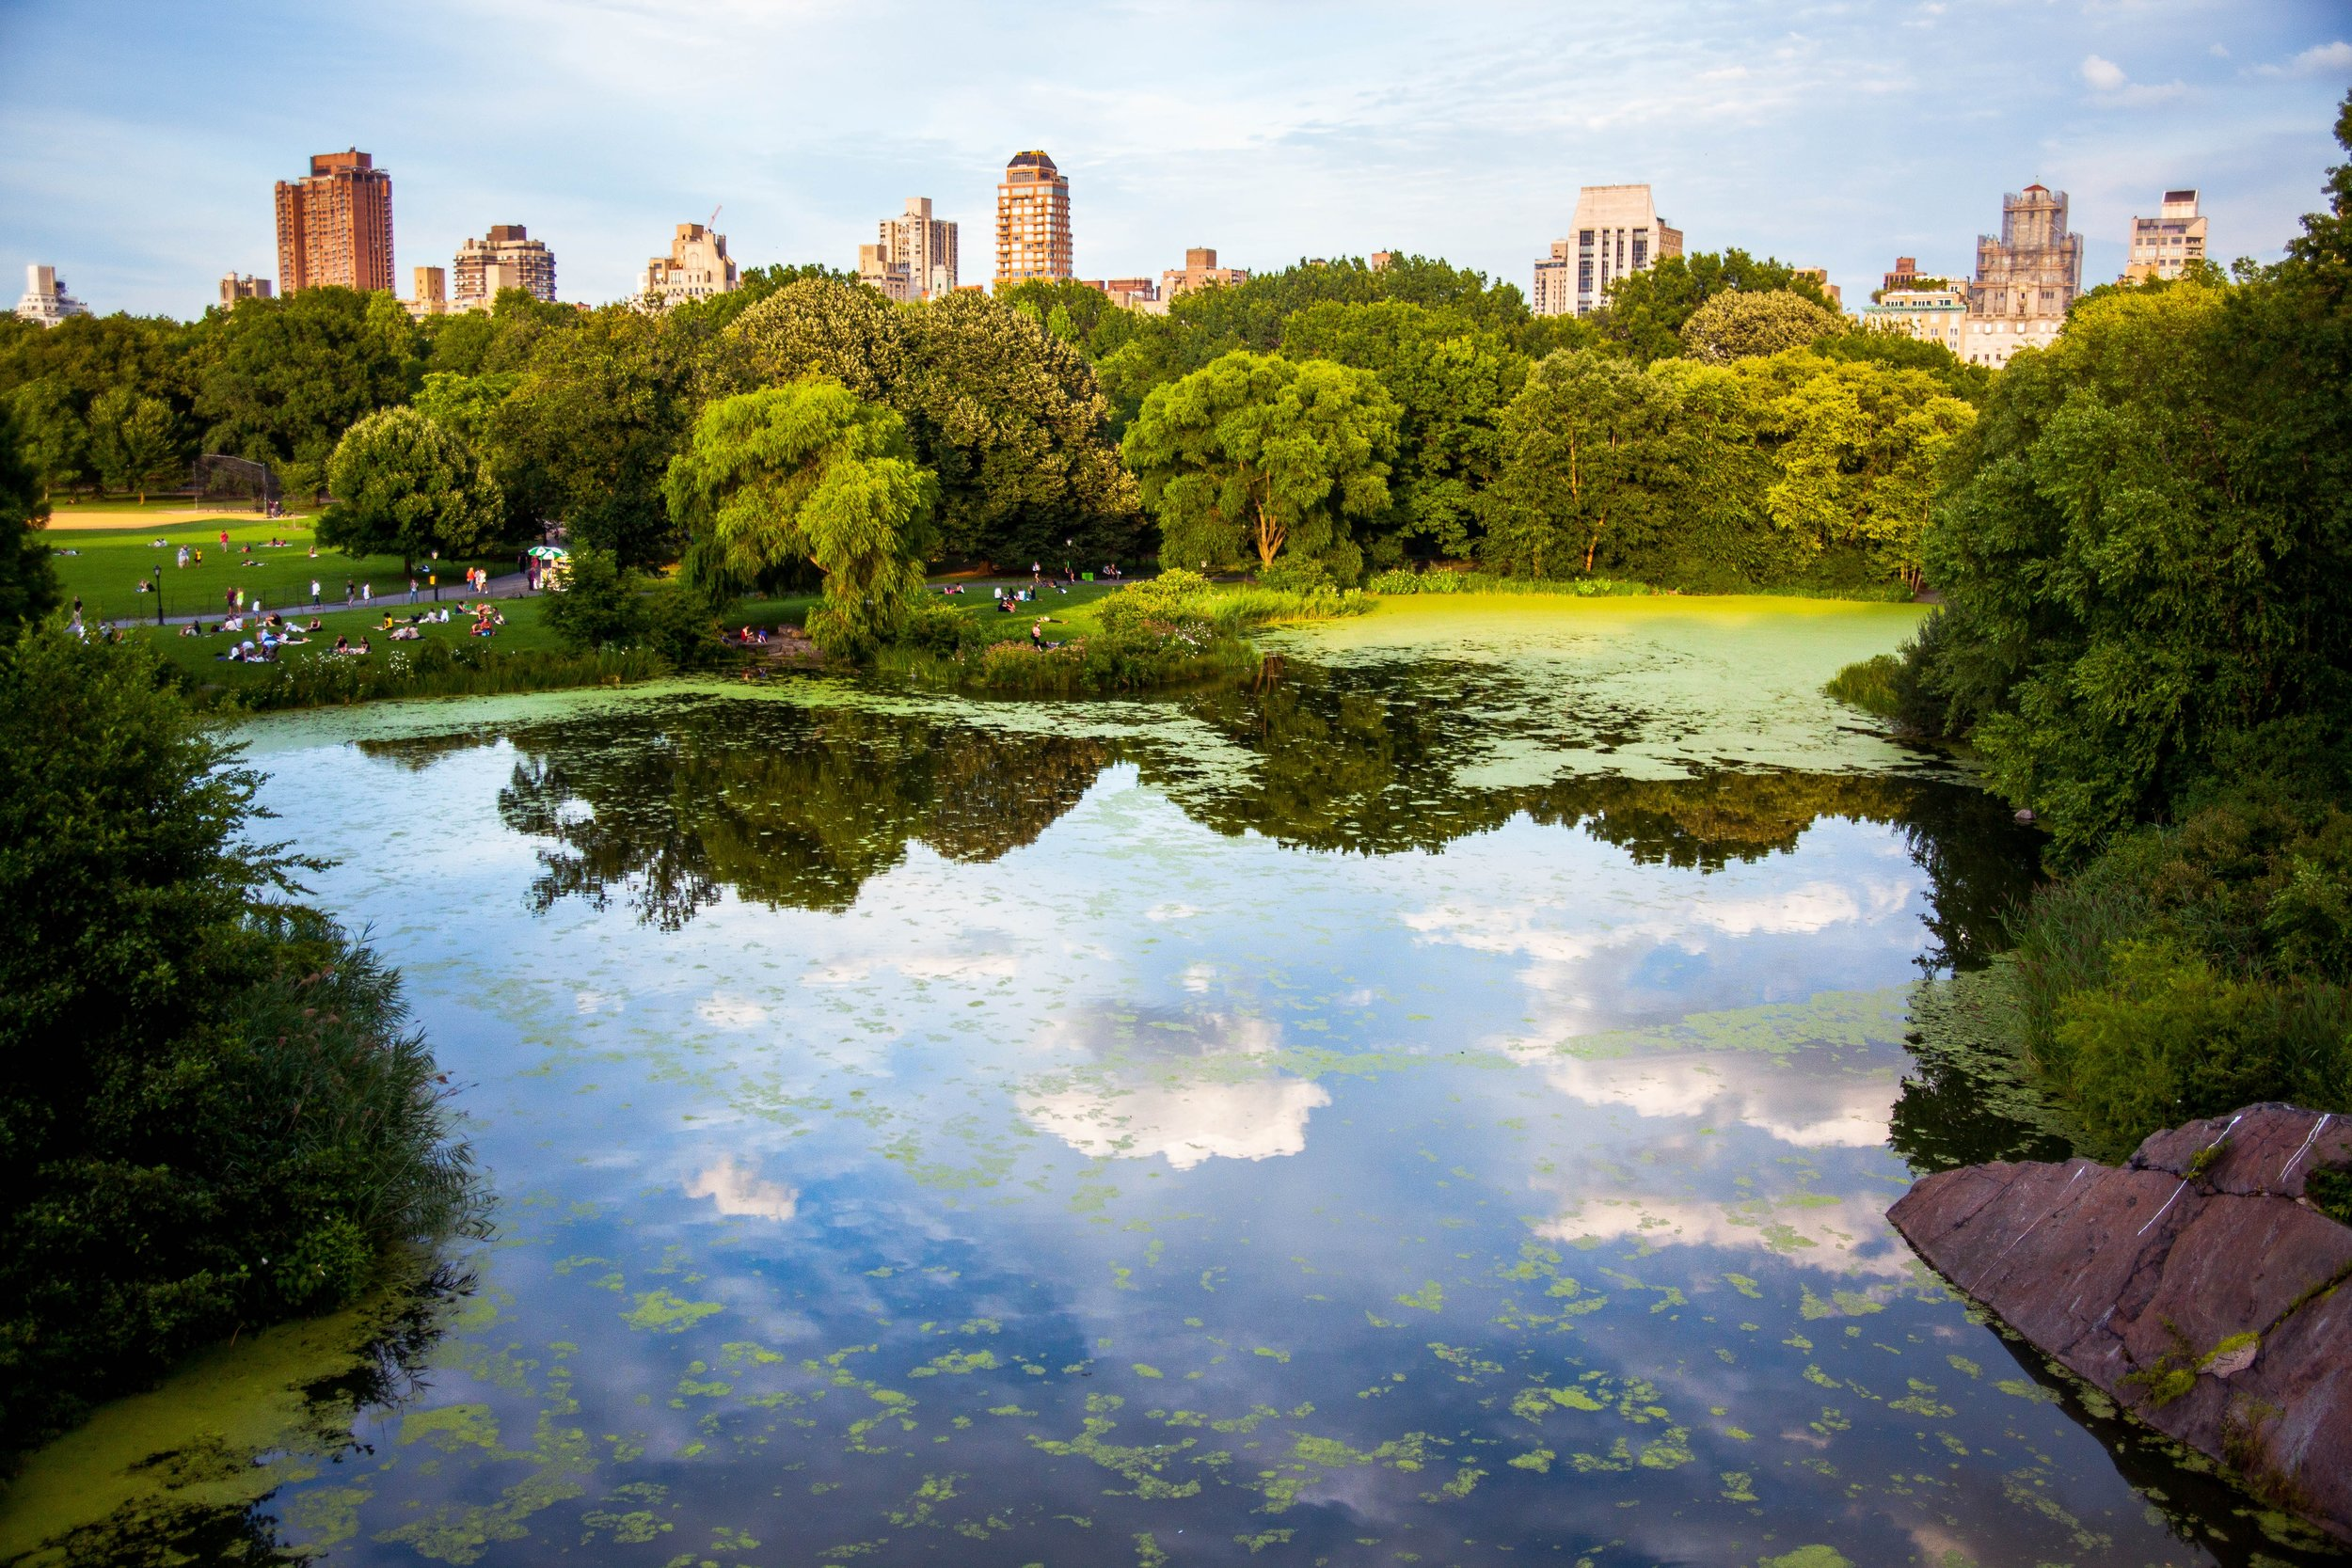 No matter where you choose to pause at Central Park, the experience is a tranquil one.